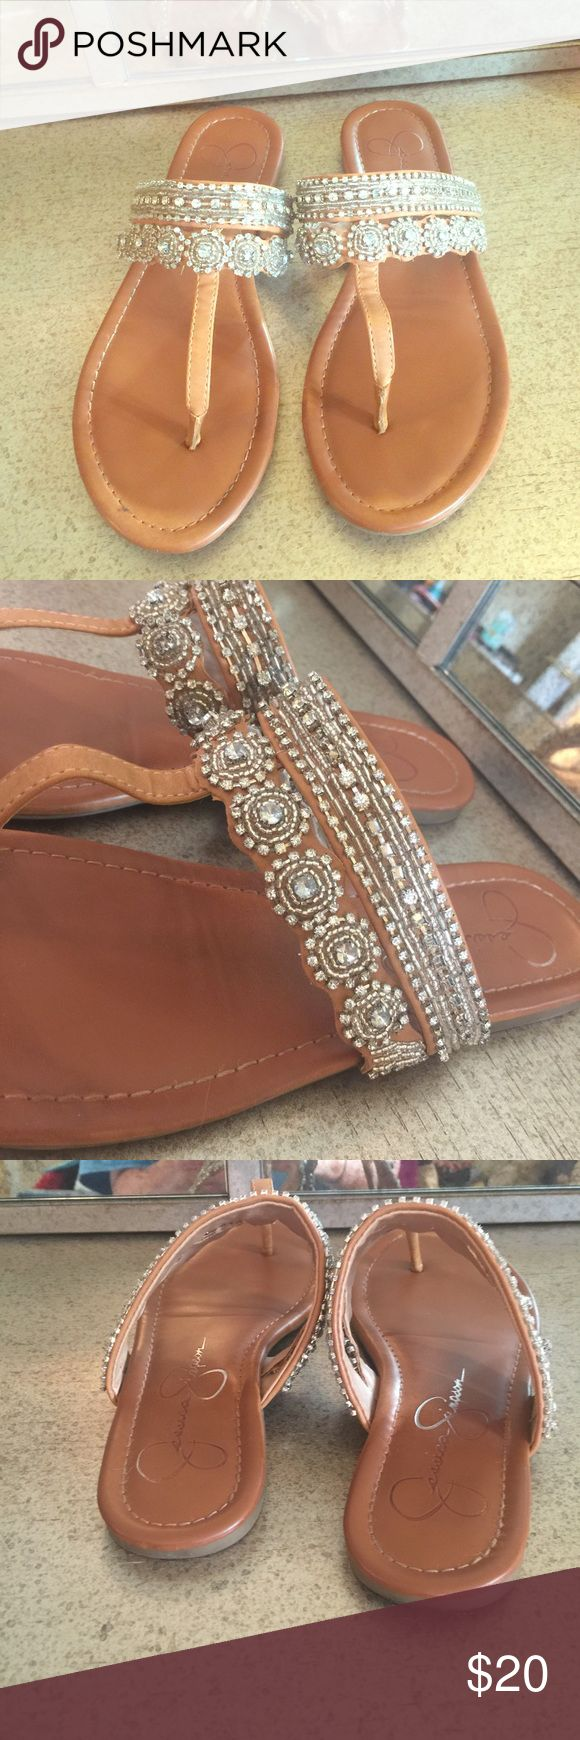 Jessica Simpson sandals Super cute Jessica Simpson sandals. Brown with silver accents. Some of the stones are missing (see pics) but otherwise good condition. Jessica Simpson Shoes Sandals